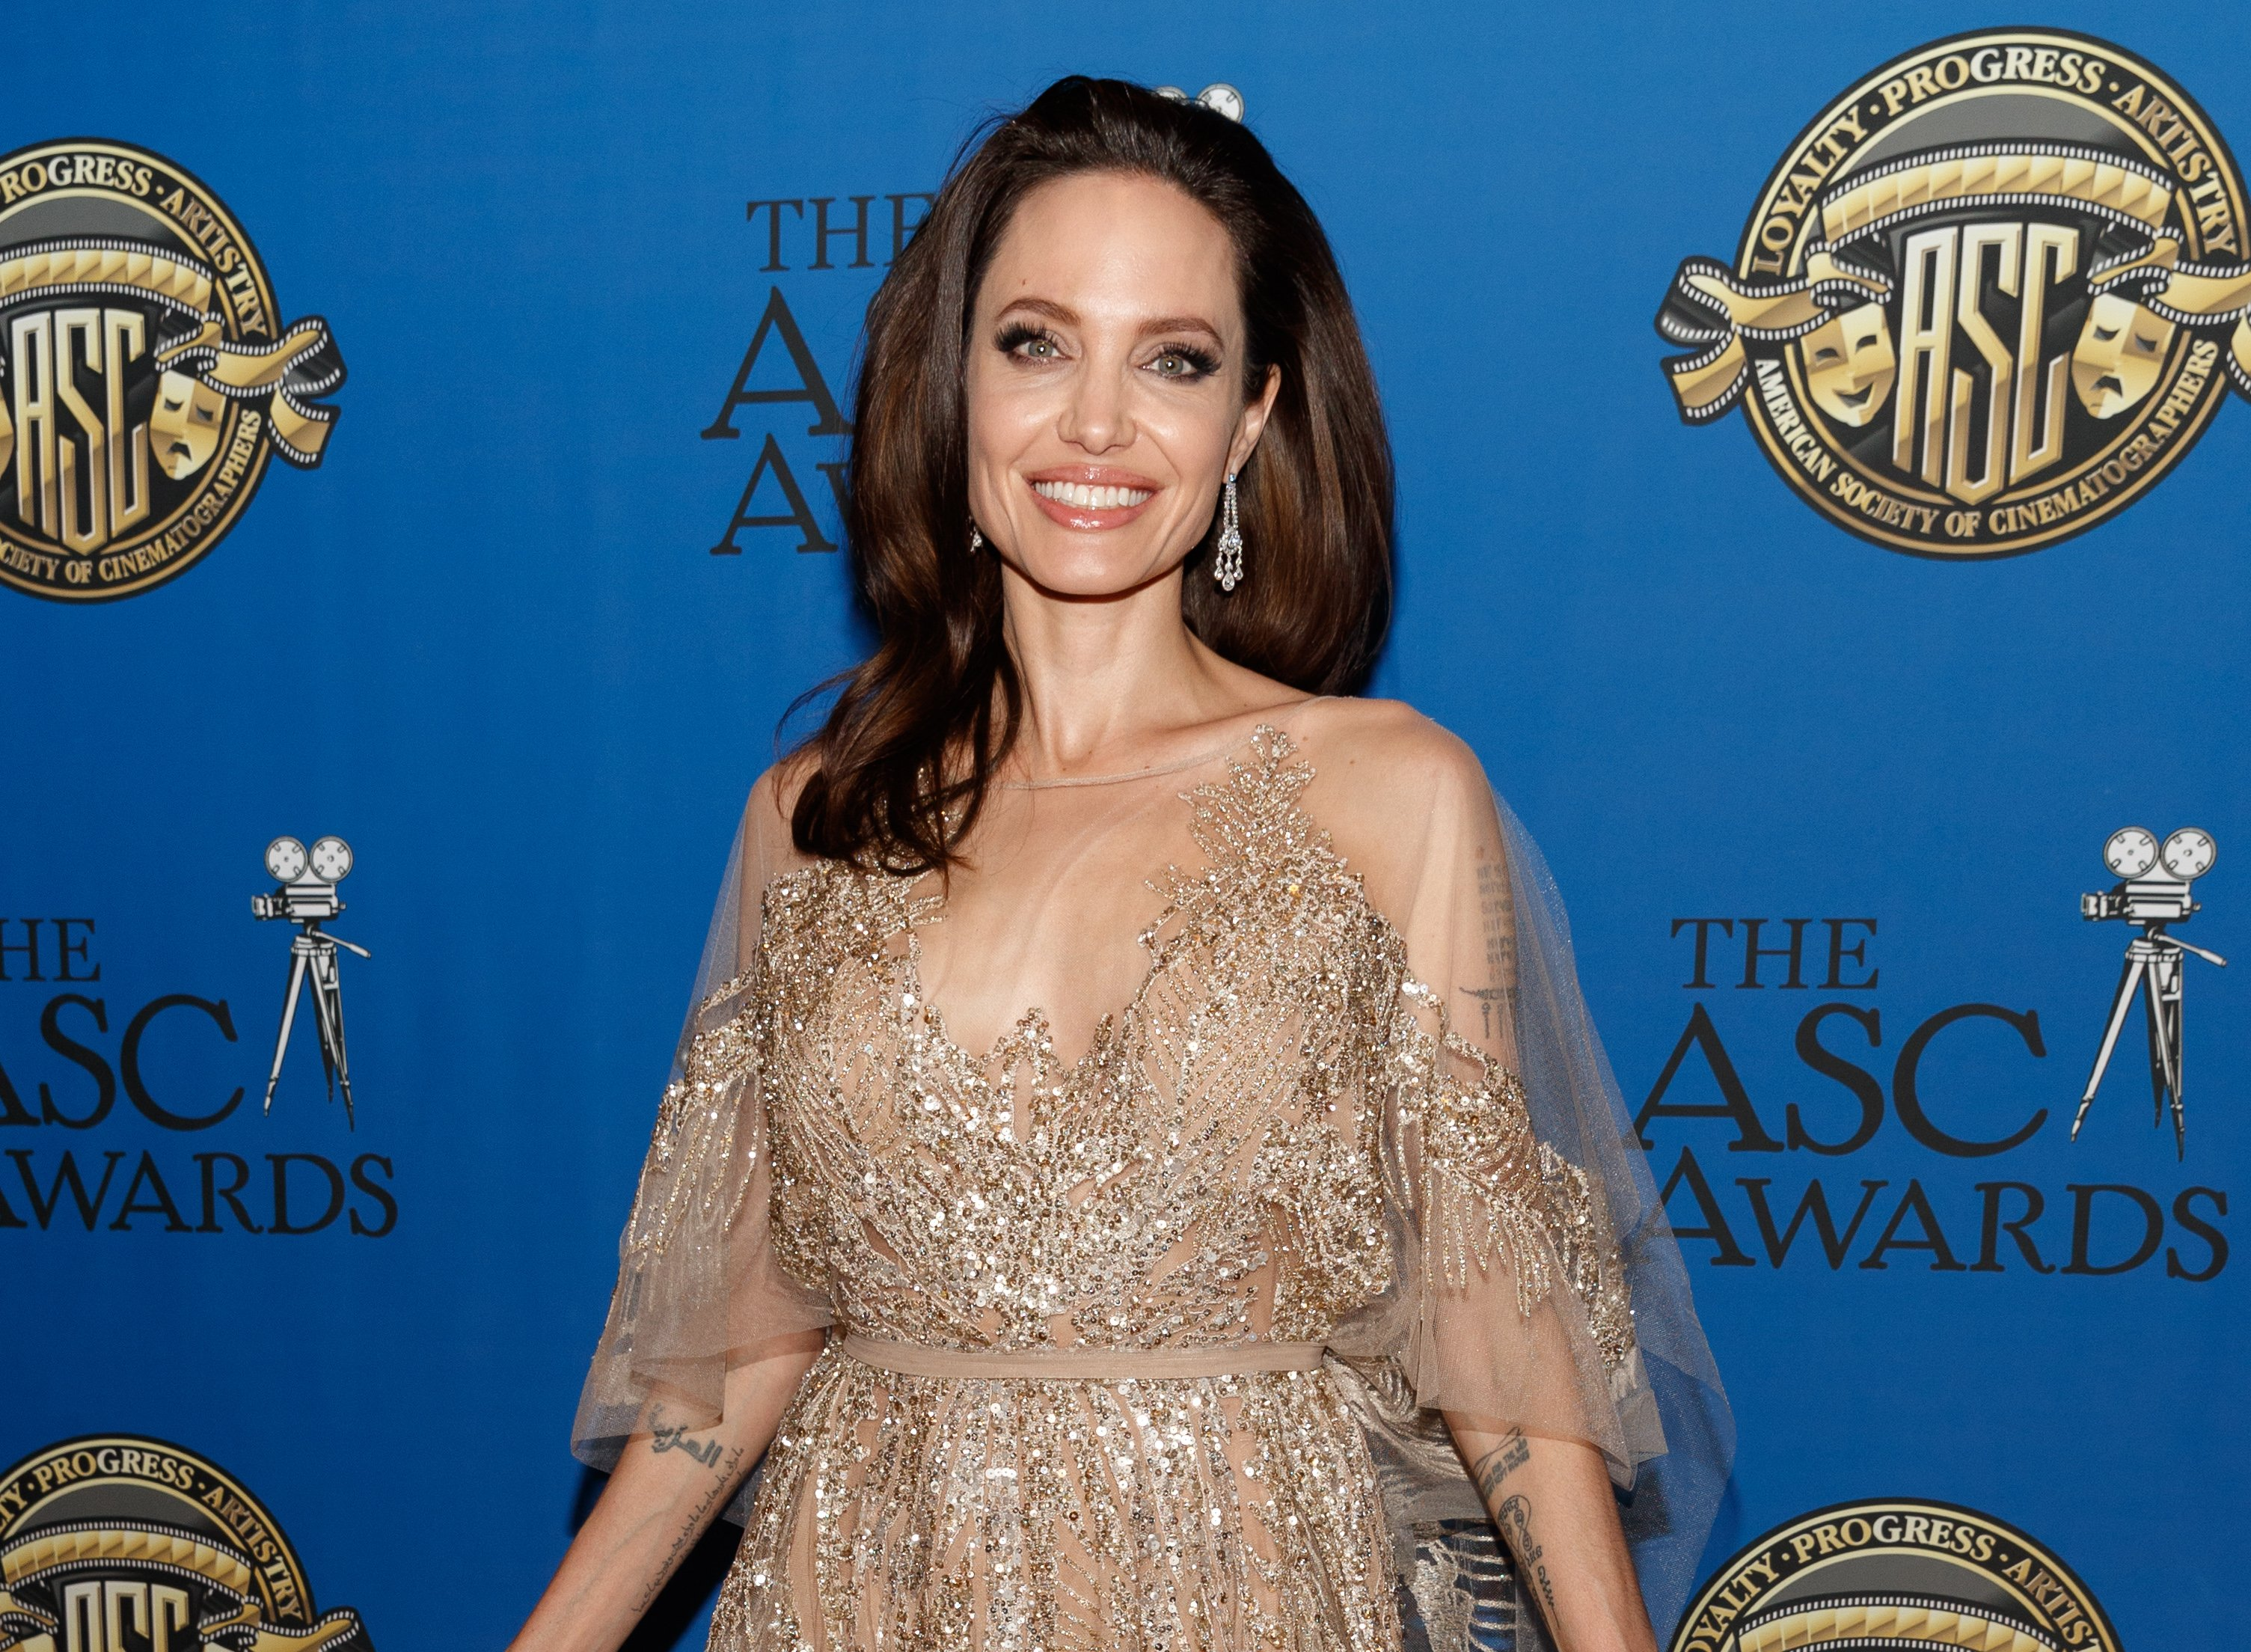 Angelina Jolie at the American Society of Cinematographers Awards in 2018. | Photo: Getty Images